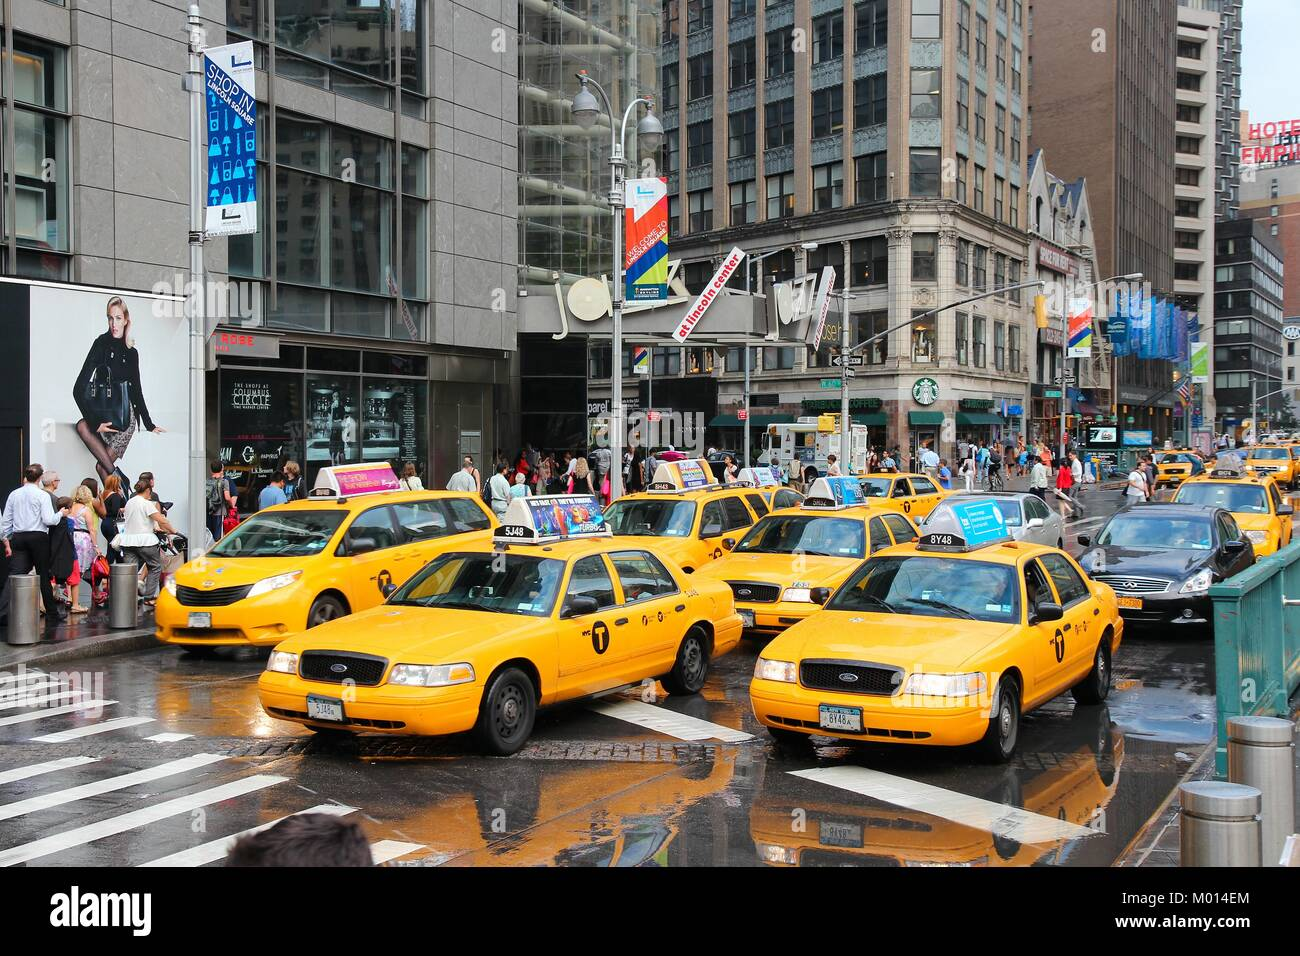 NEW YORK - JULY 3: People ride yellow taxi cabs along 8th ...